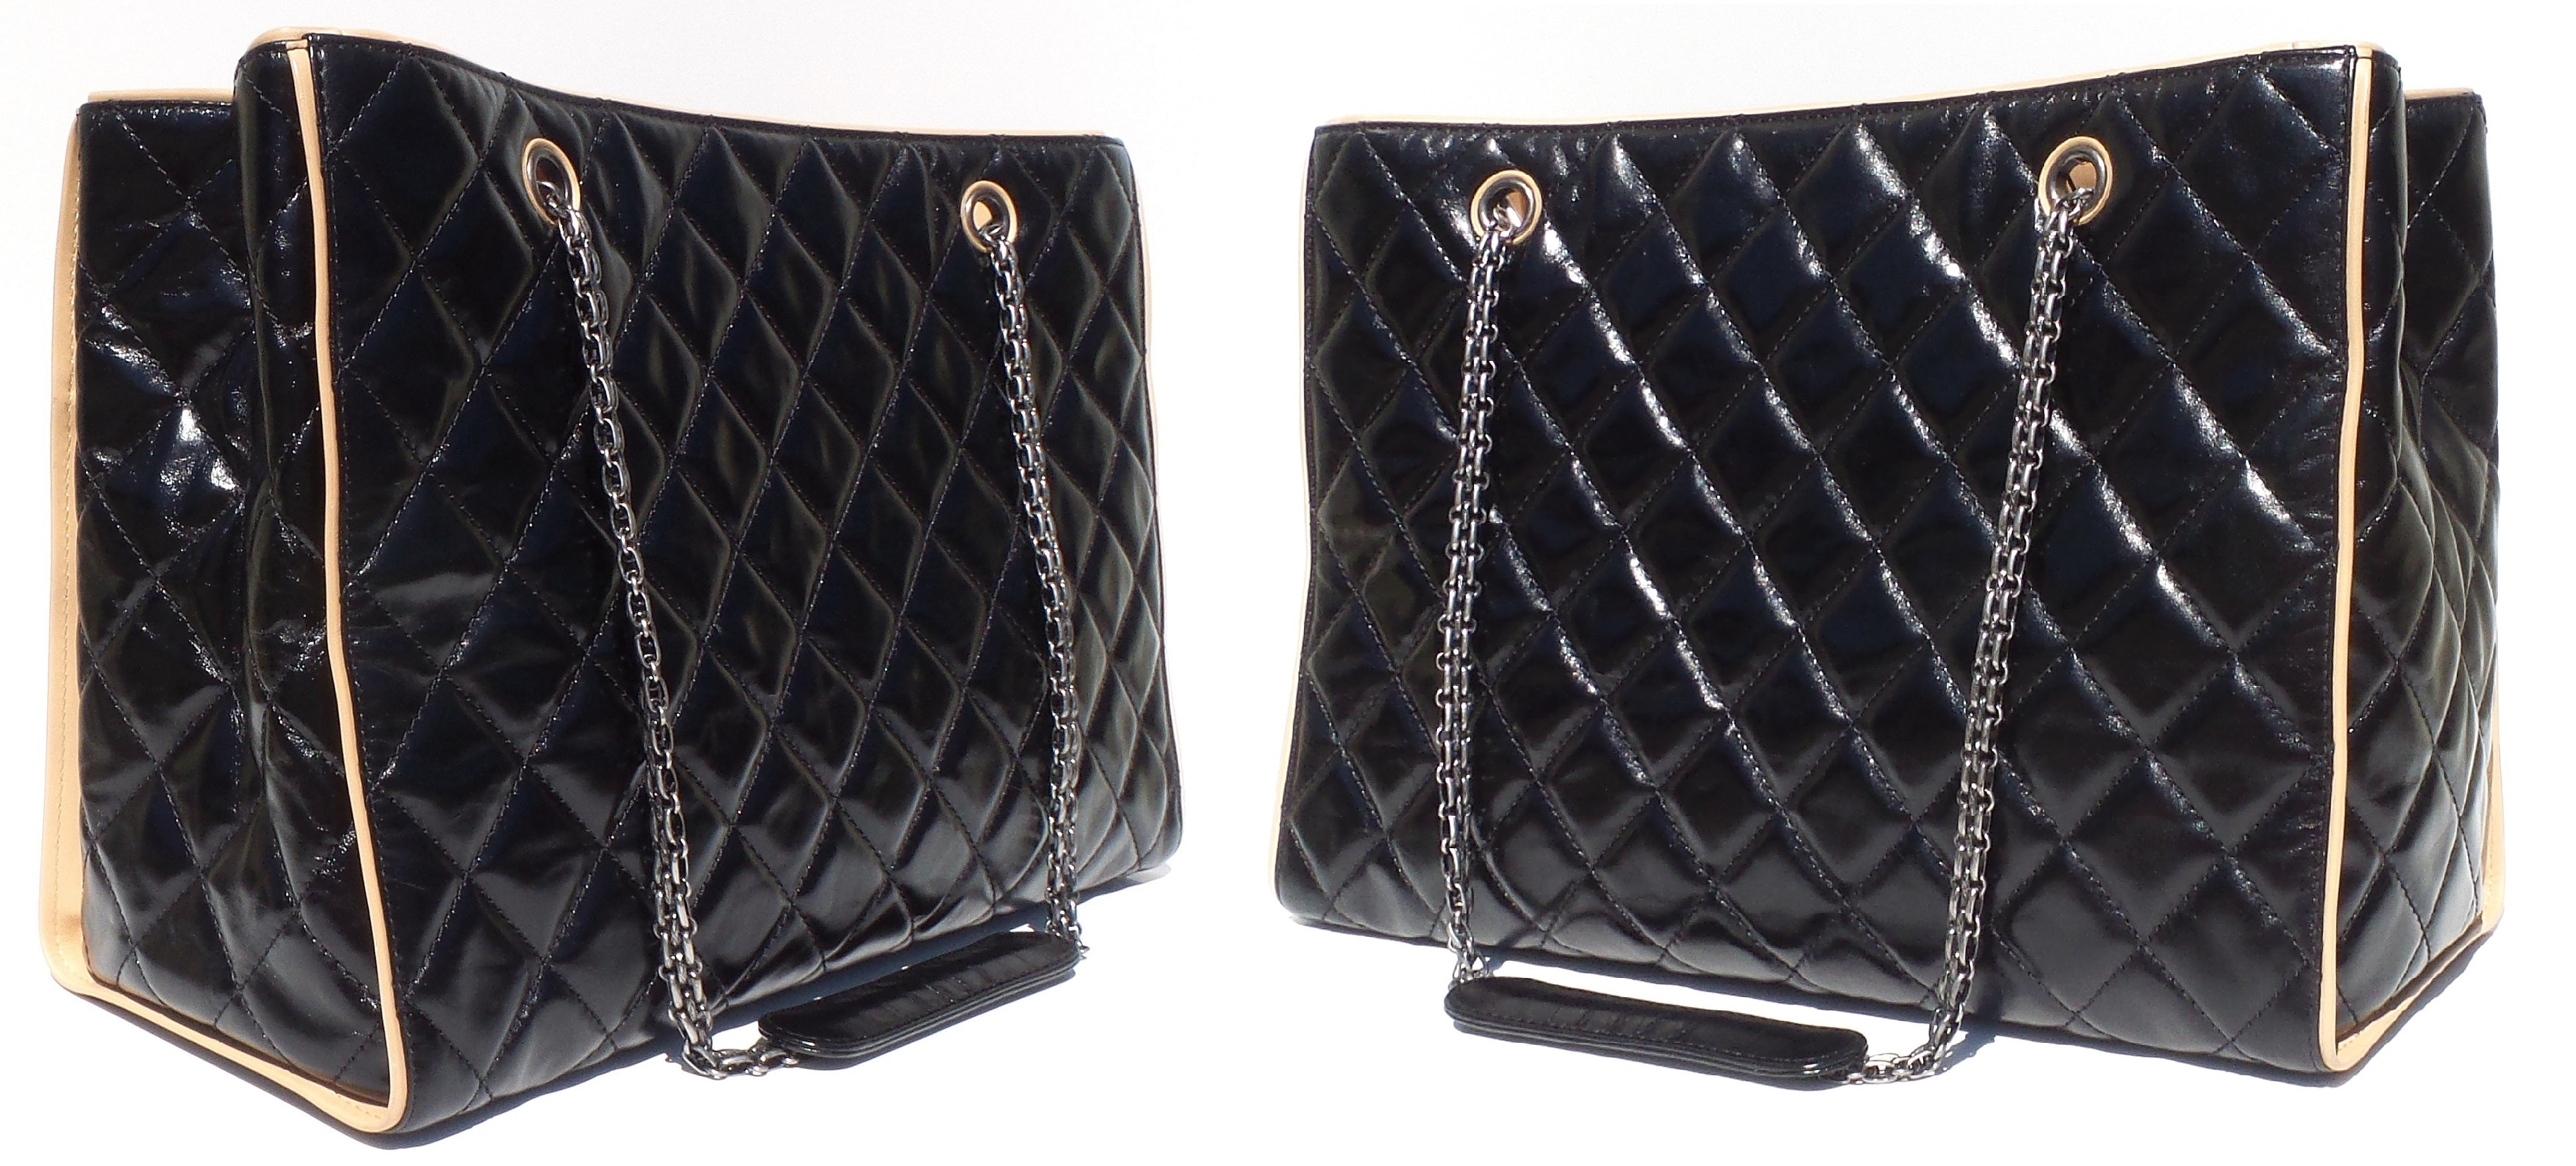 057905a96ac06c CHANEL Black Glazed Quilted Leather Beige 2.55 Reissue Grand Shopping Tote  Bag